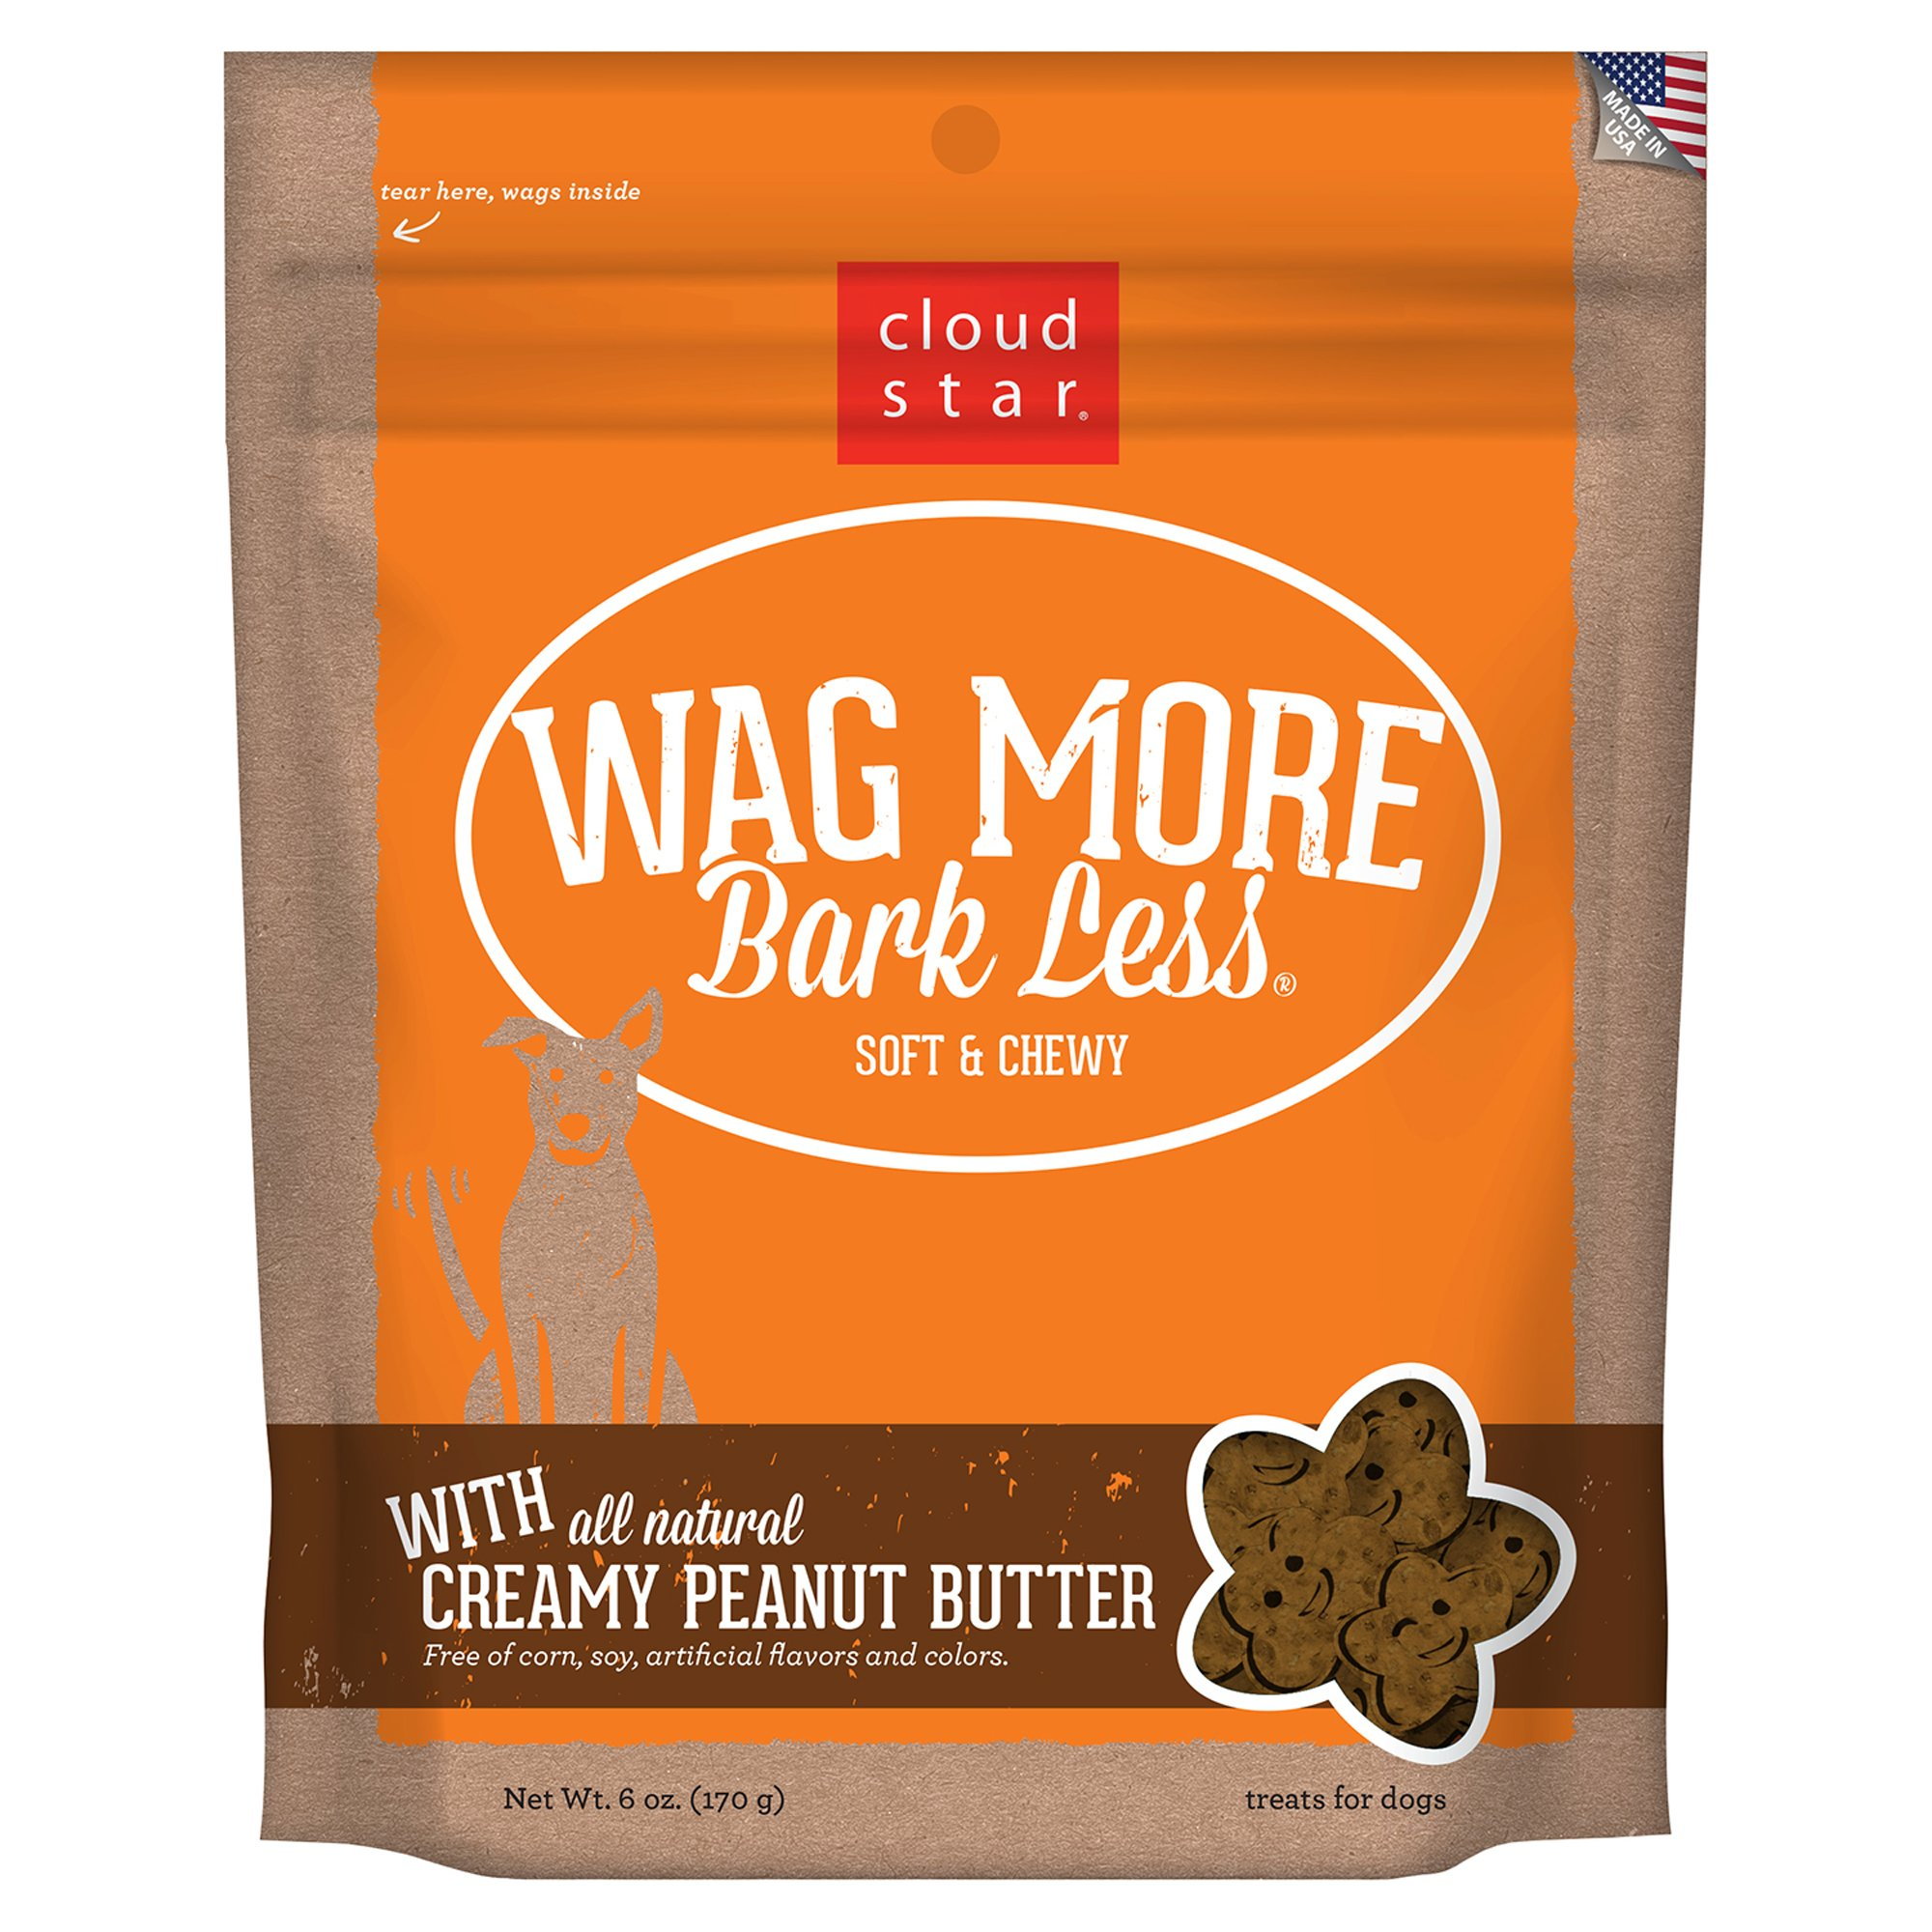 Cloud Star Wag More Bark Less Soft & Chewy Peanut Butter Dog Treats